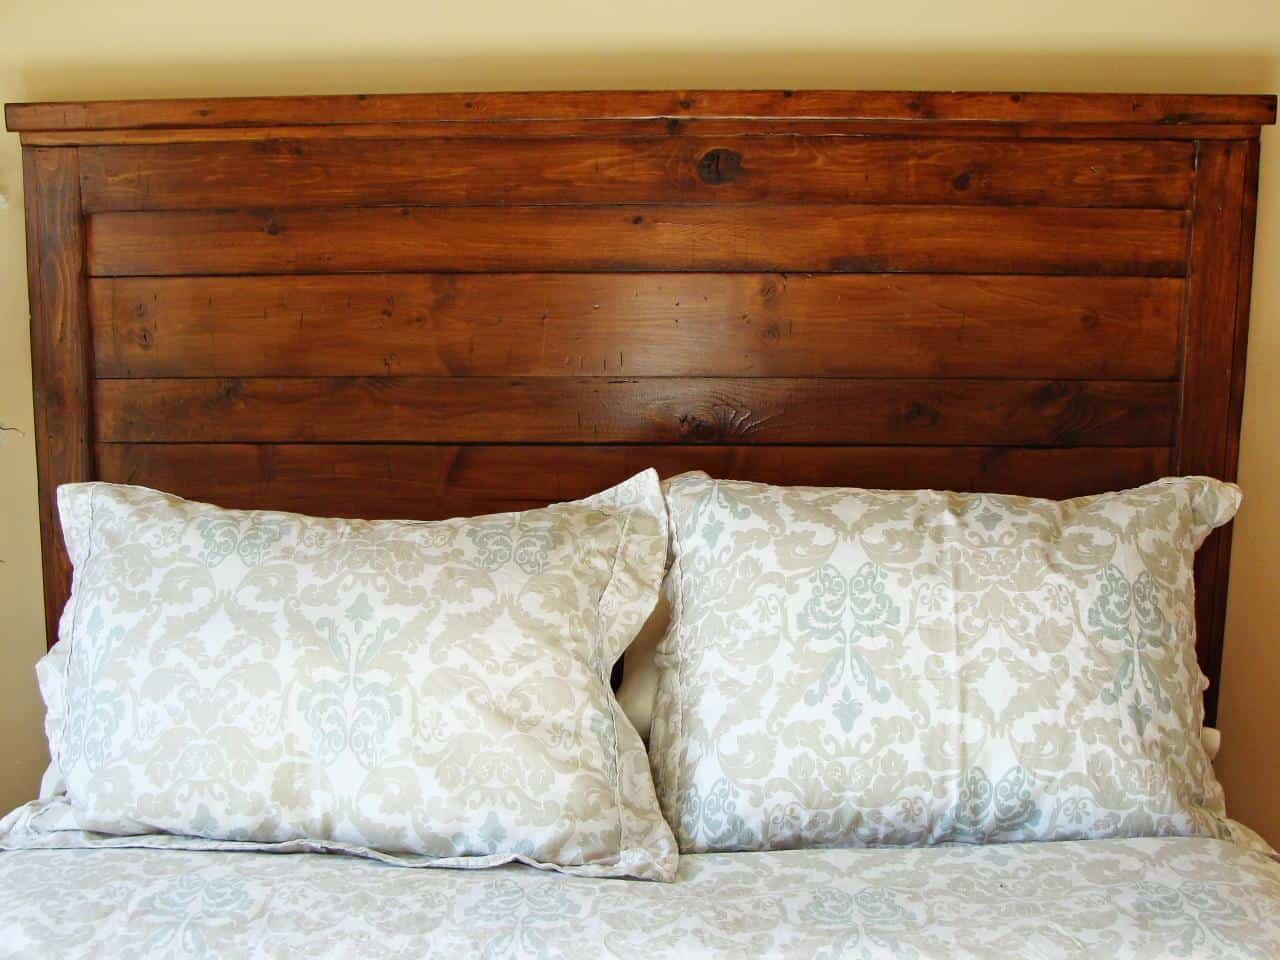 Basic wooden framed headboard